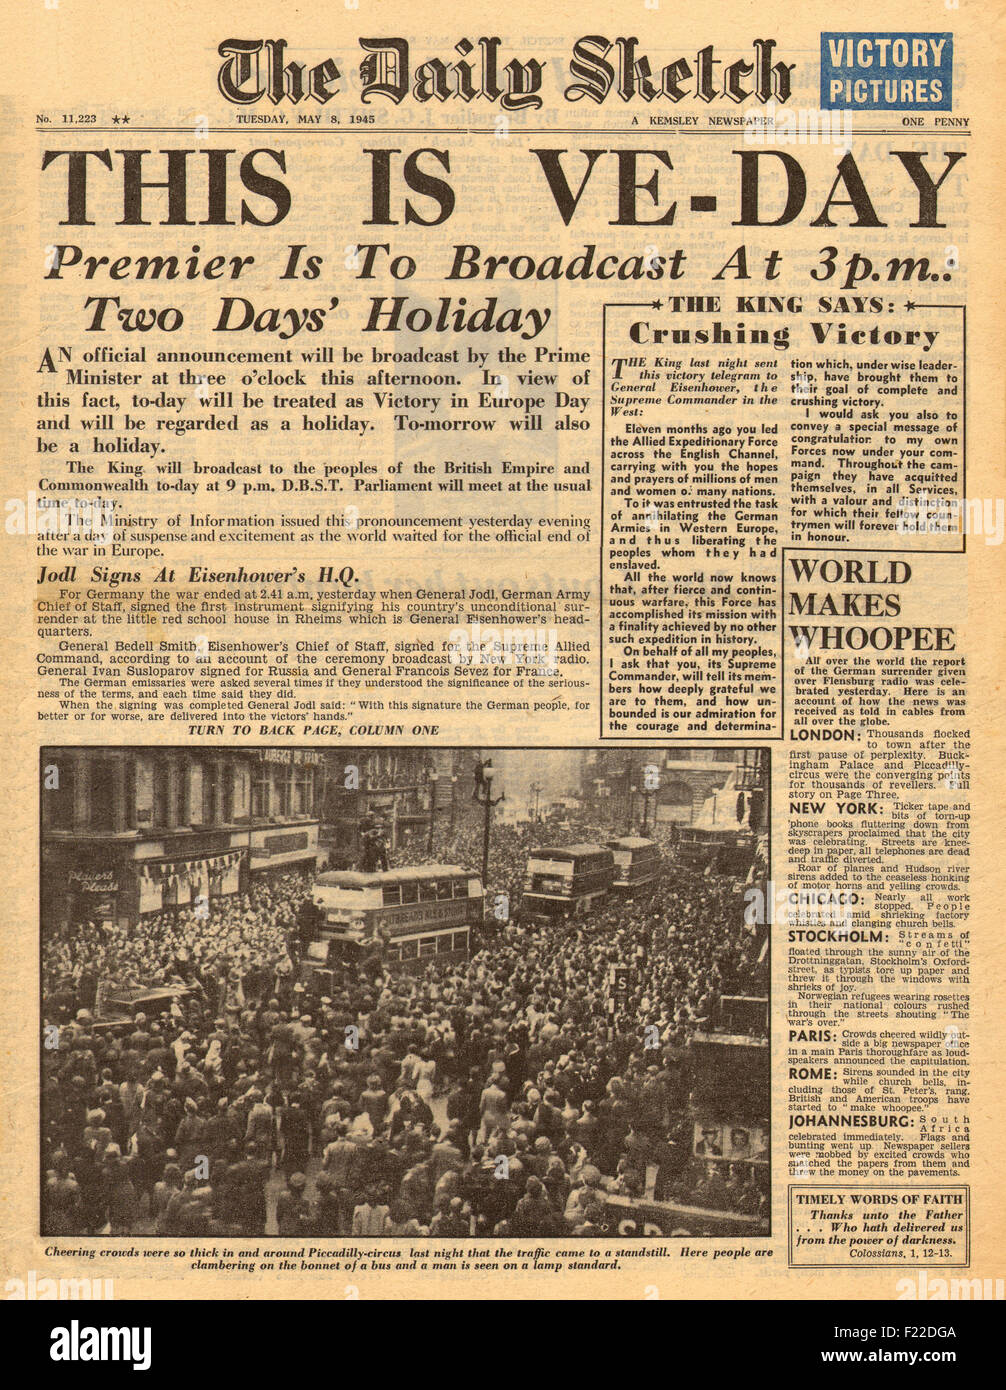 1945 Daily Sketch front page VE Day Stock Photo: 87335706 - Alamy